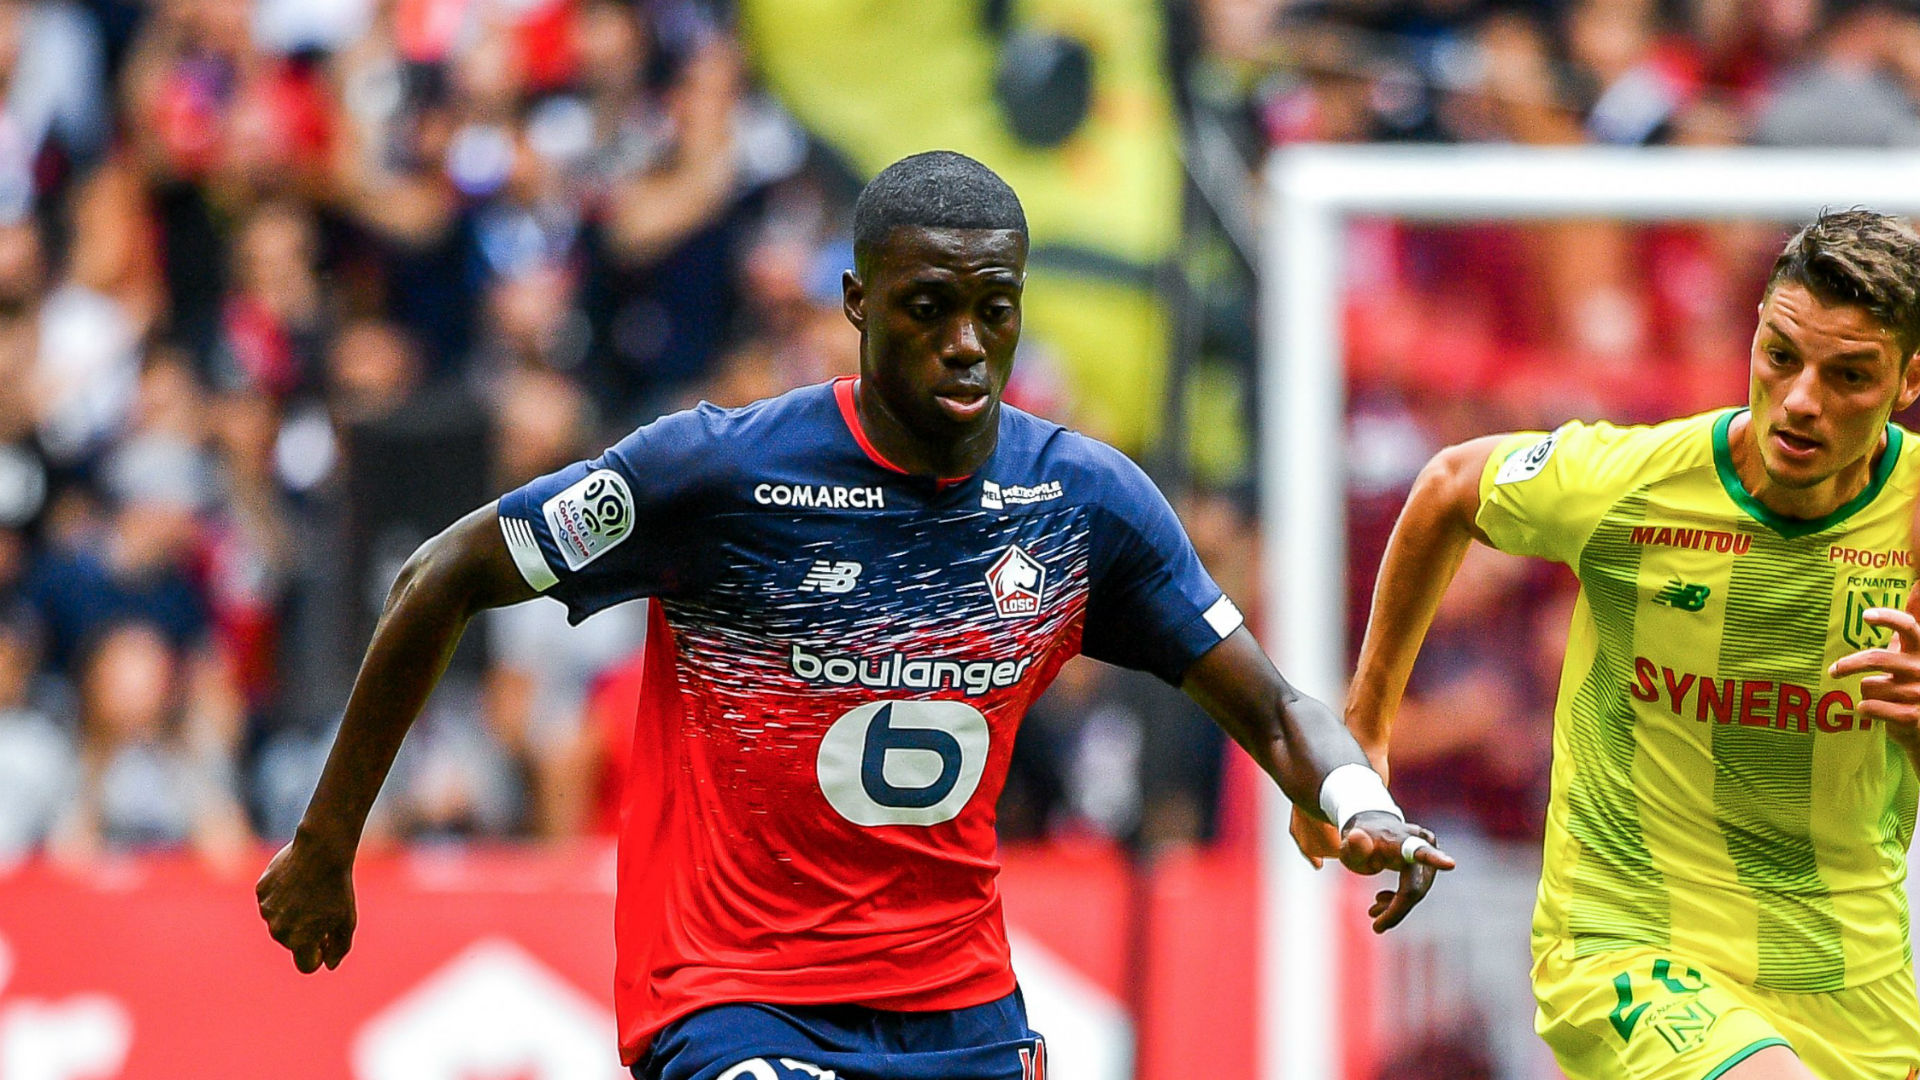 Ligue1: Osimhen's brace earns Lille all three points on opening day